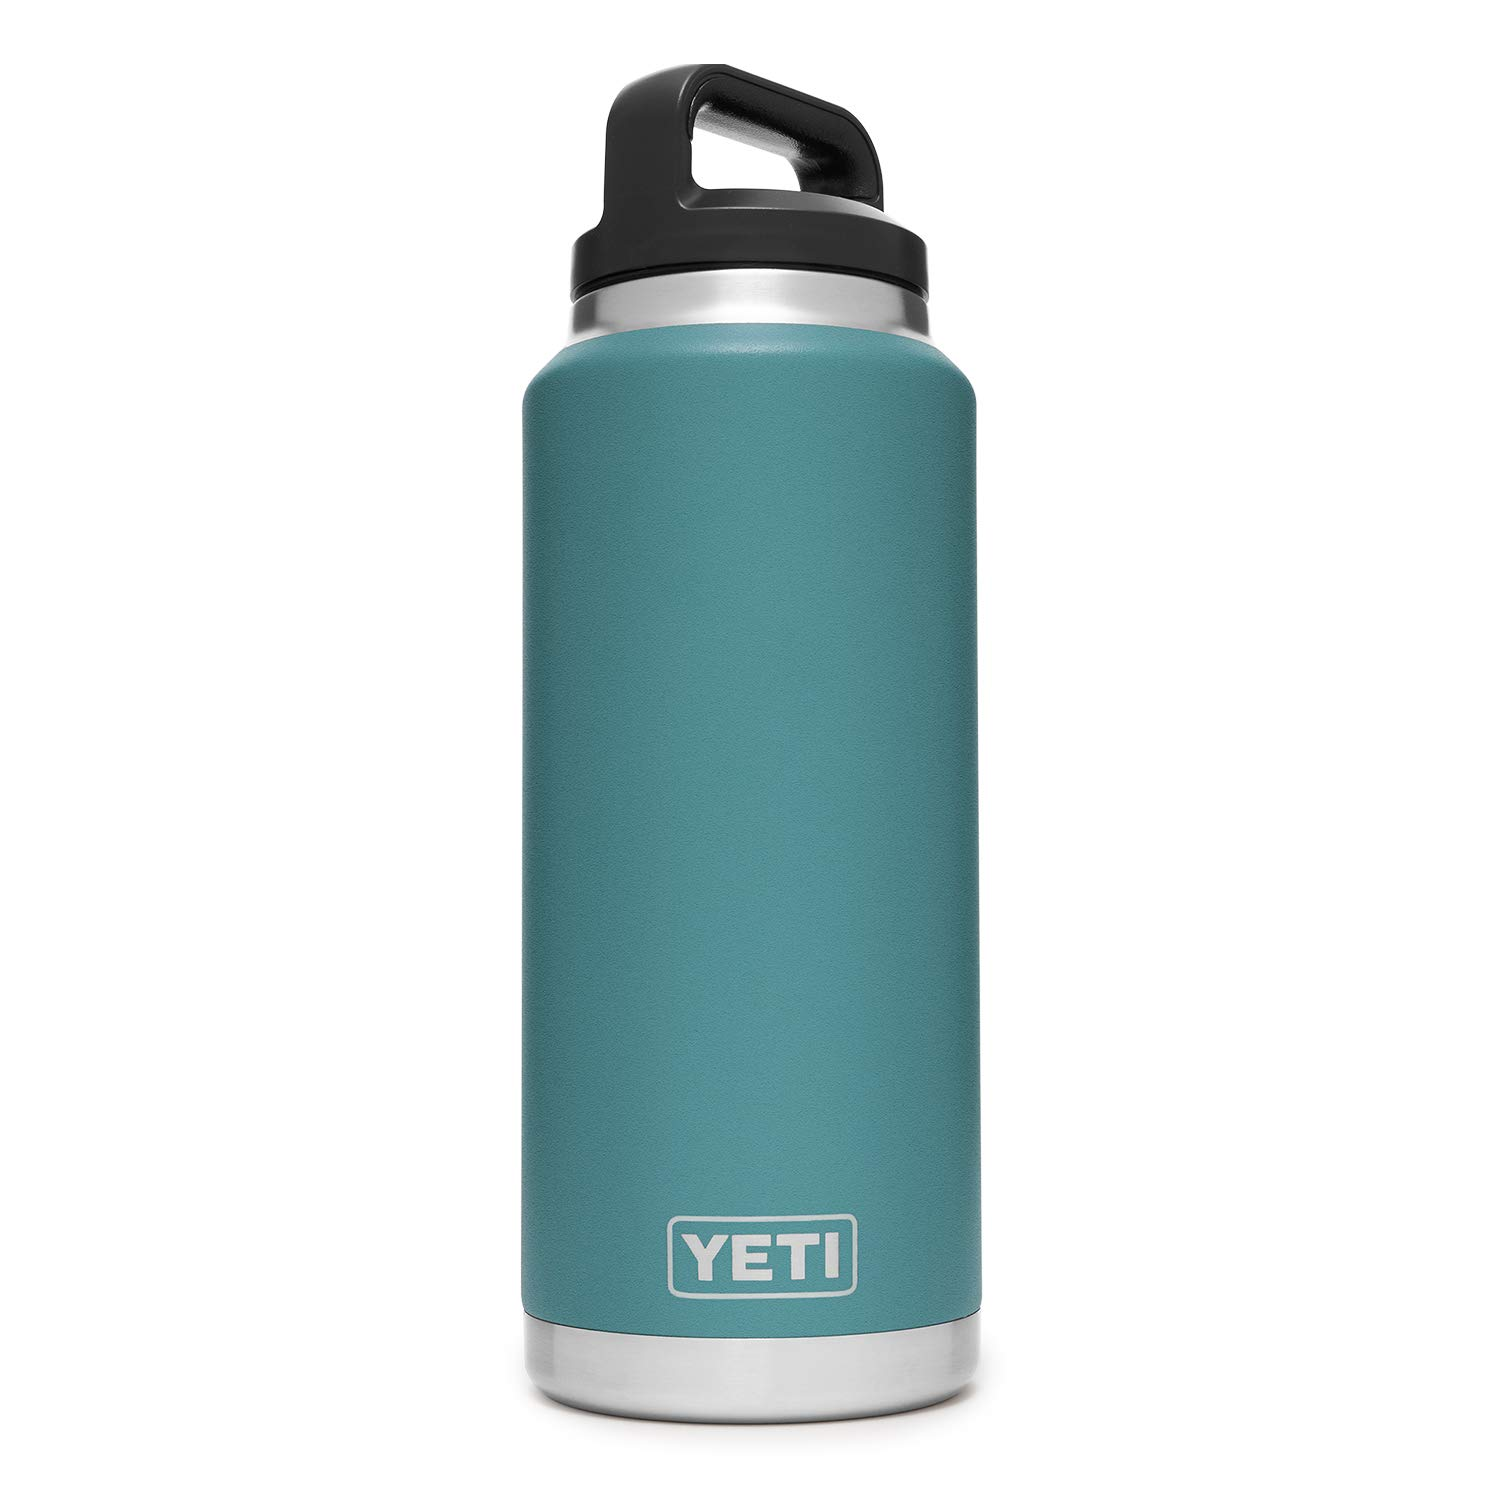 YETI Rambler 36 oz Stainless Steel Vacuum Insulated Bottle with Cap, River Green by YETI